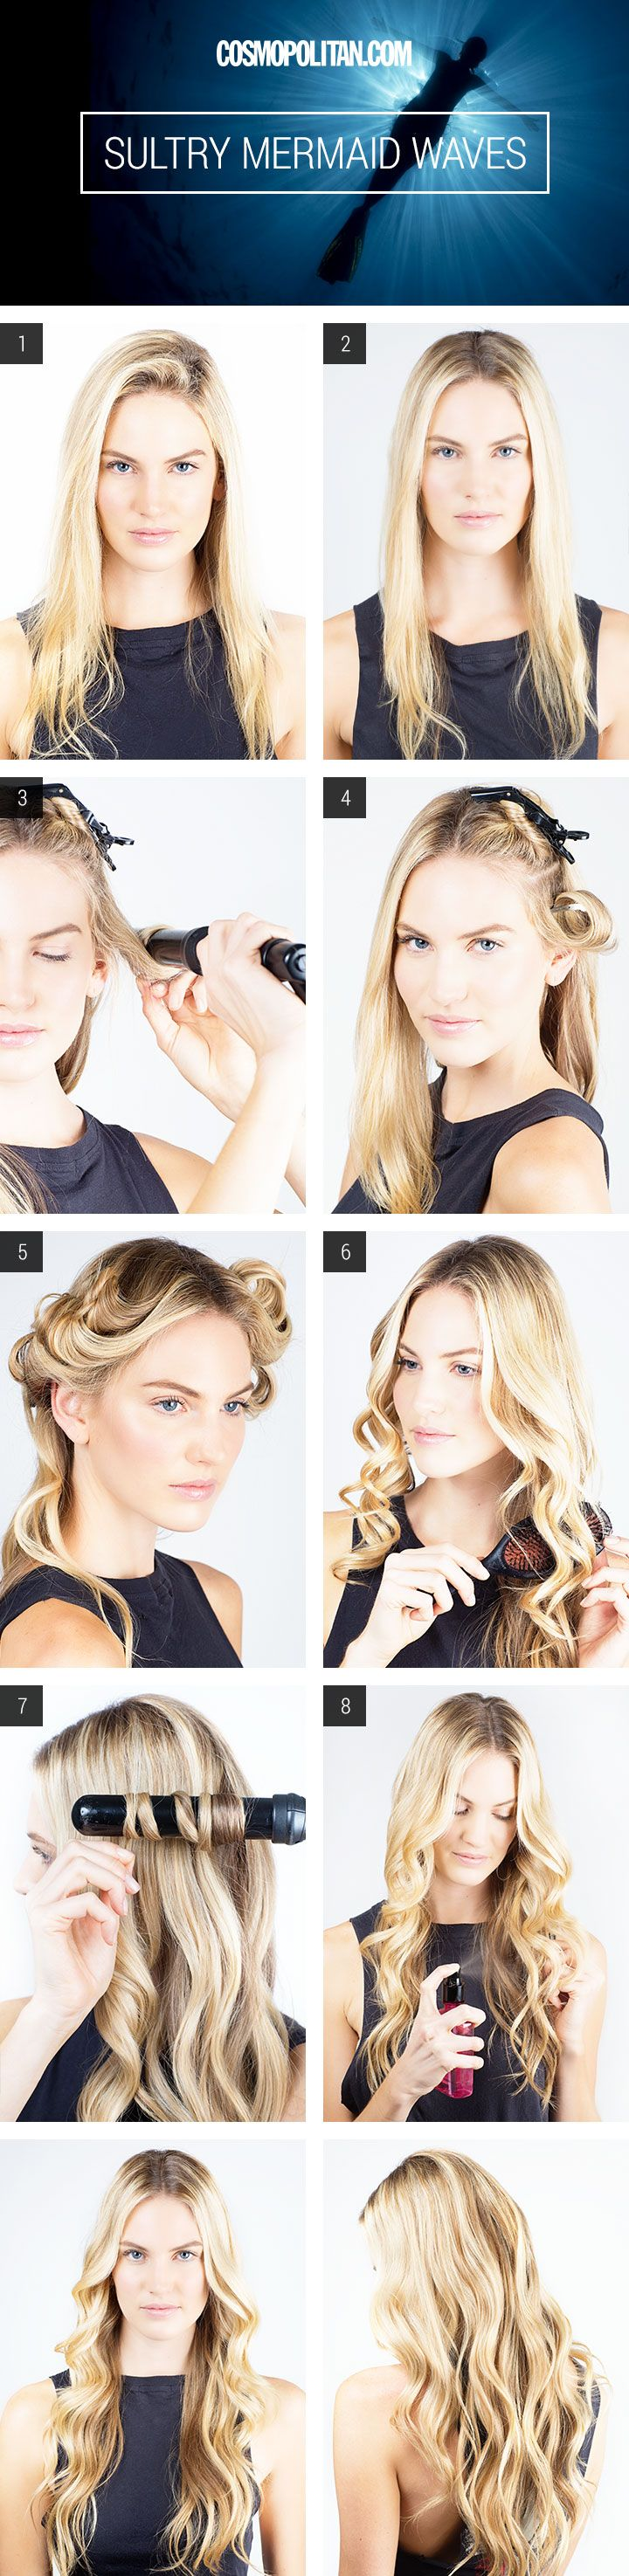 How to create gorgeous mermaid waves for Halloween this year.  http://www.cosmopolitan.com/hairstyles-beauty/beauty-blog/sultry-mermaid-waves-halloween-tutorial